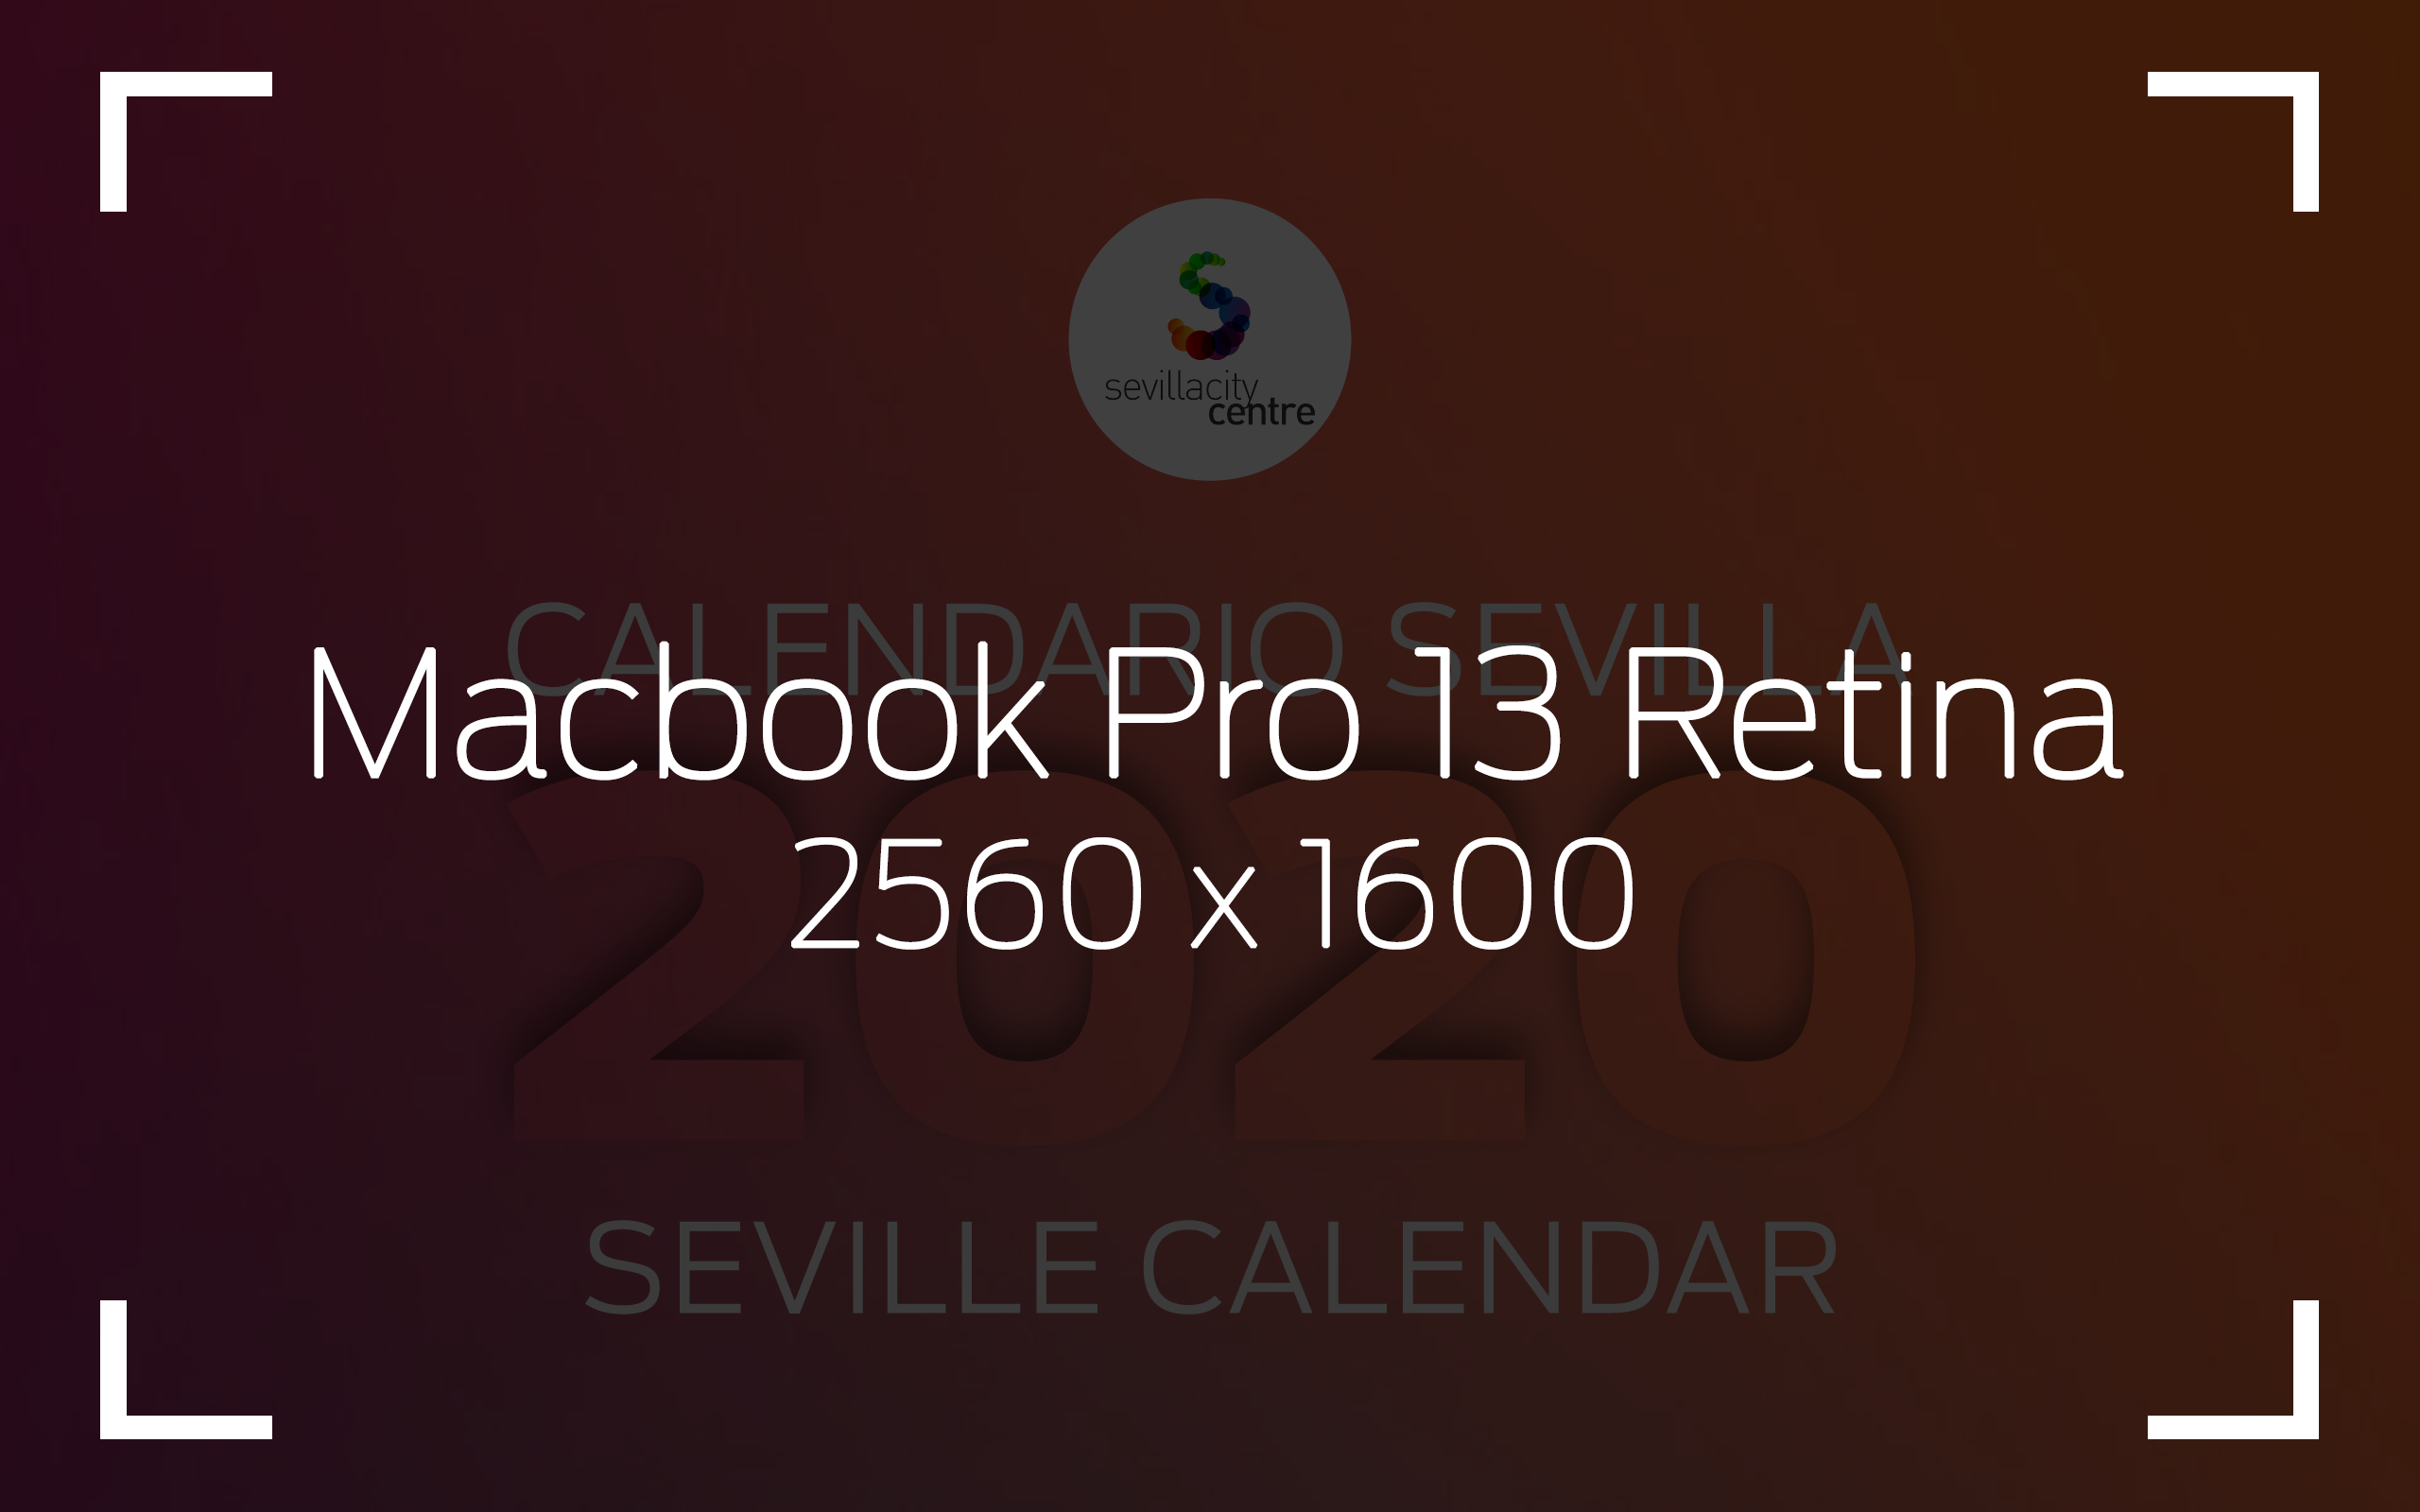 calendario sevilla city centre macbook pro 13 retina